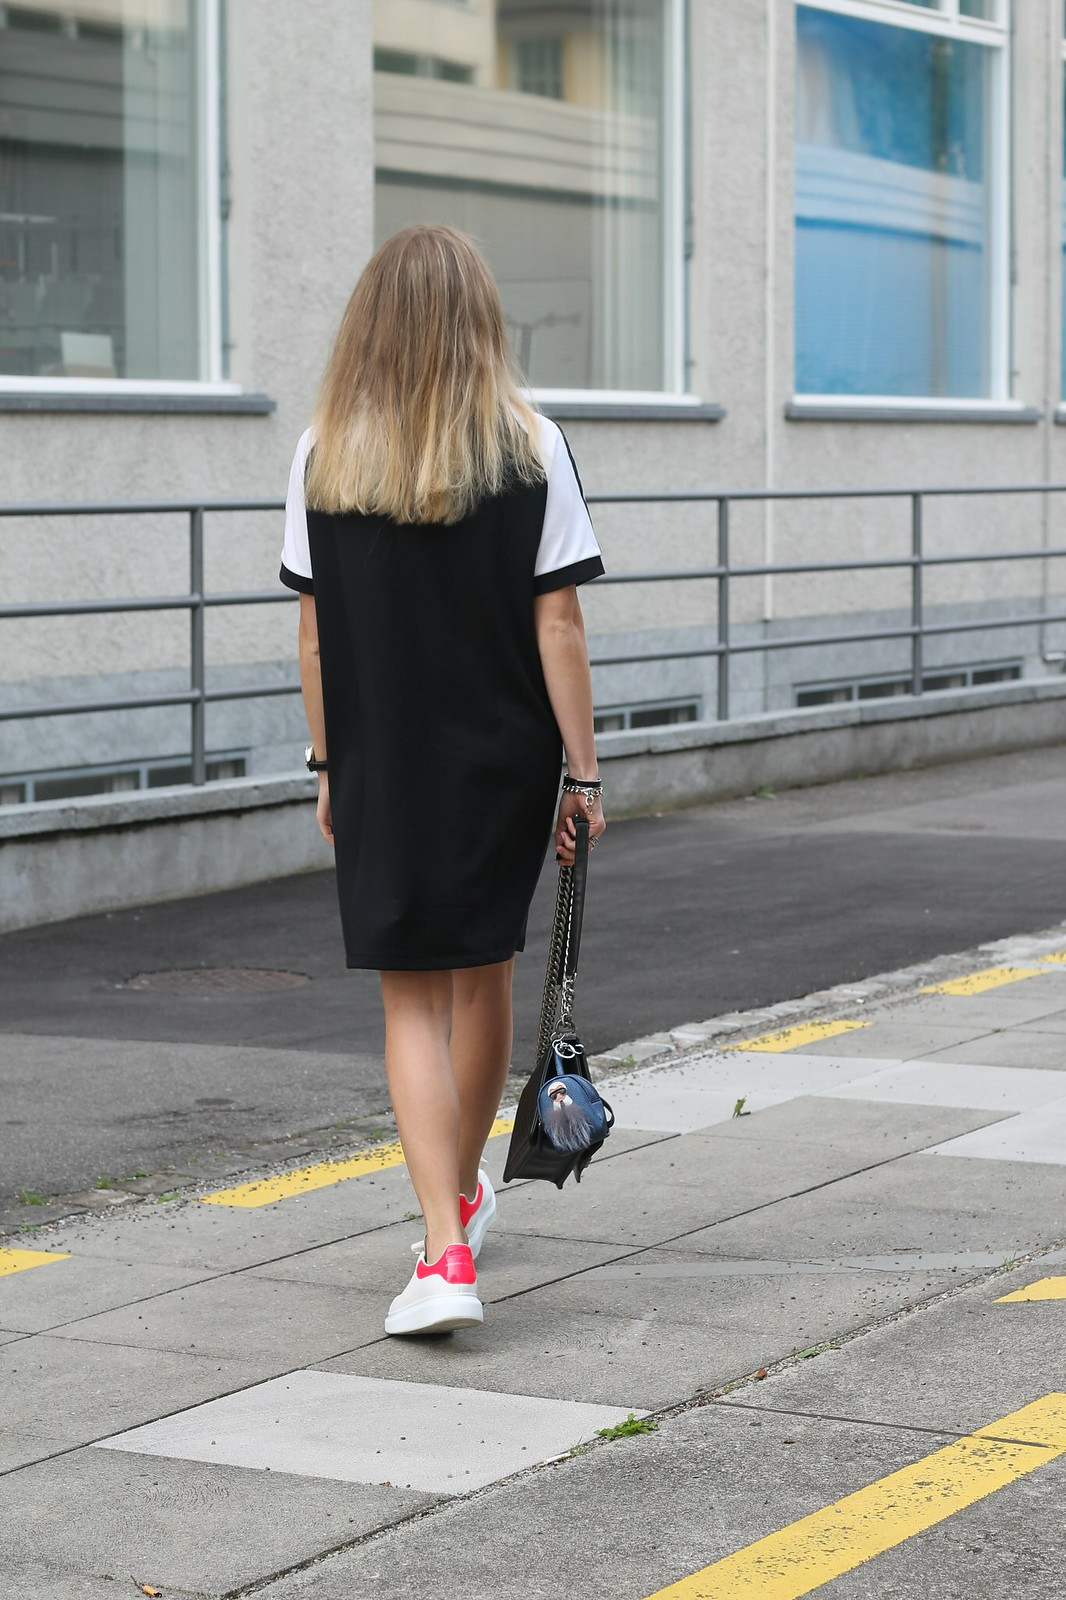 adidas-dress-and-alexander-mc-queen-sneaker-whole-outfit-back-wiebkembg